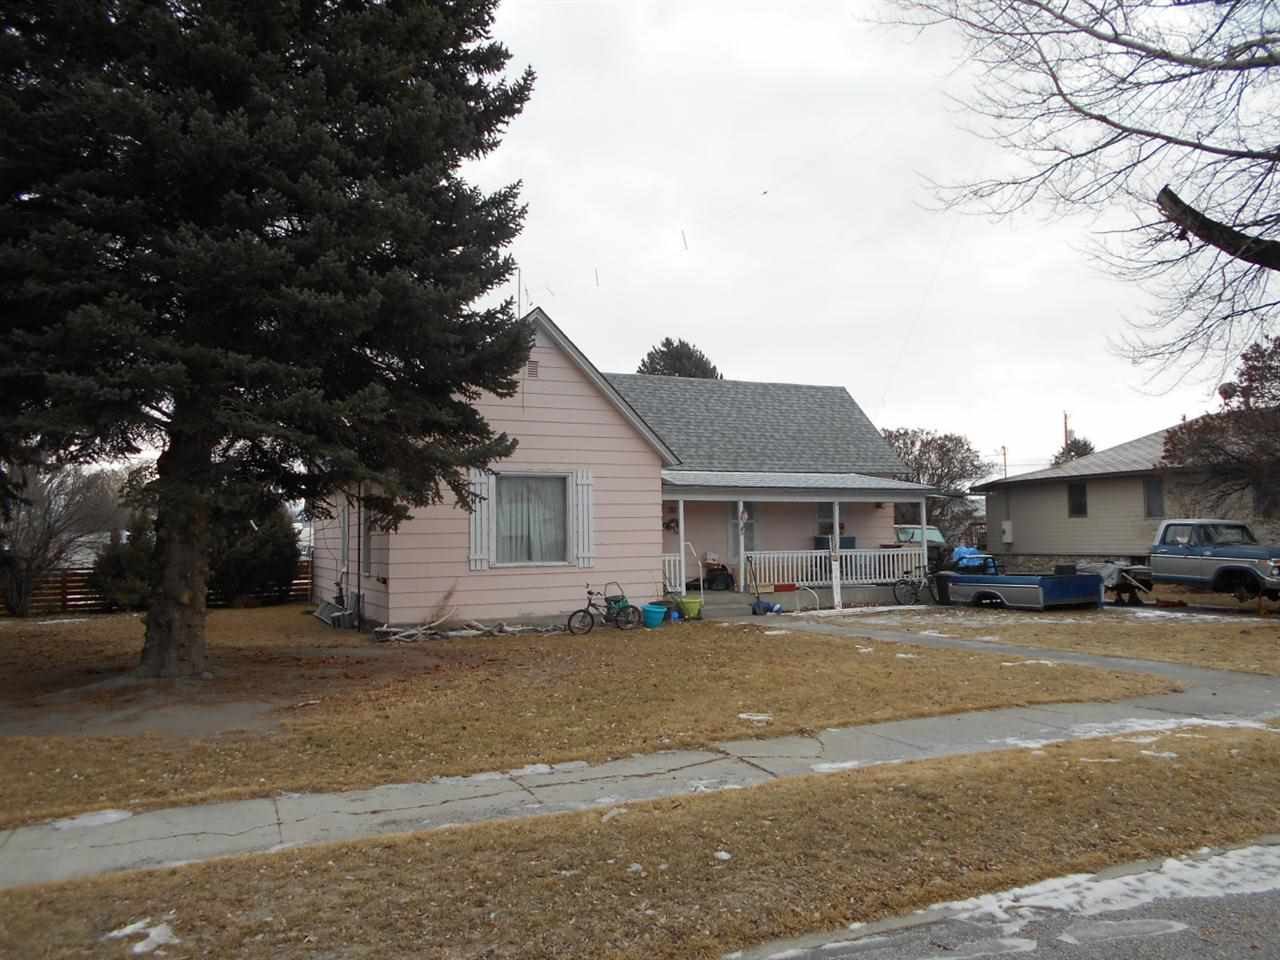 311 S Spruce St, Townsend, MT 59644